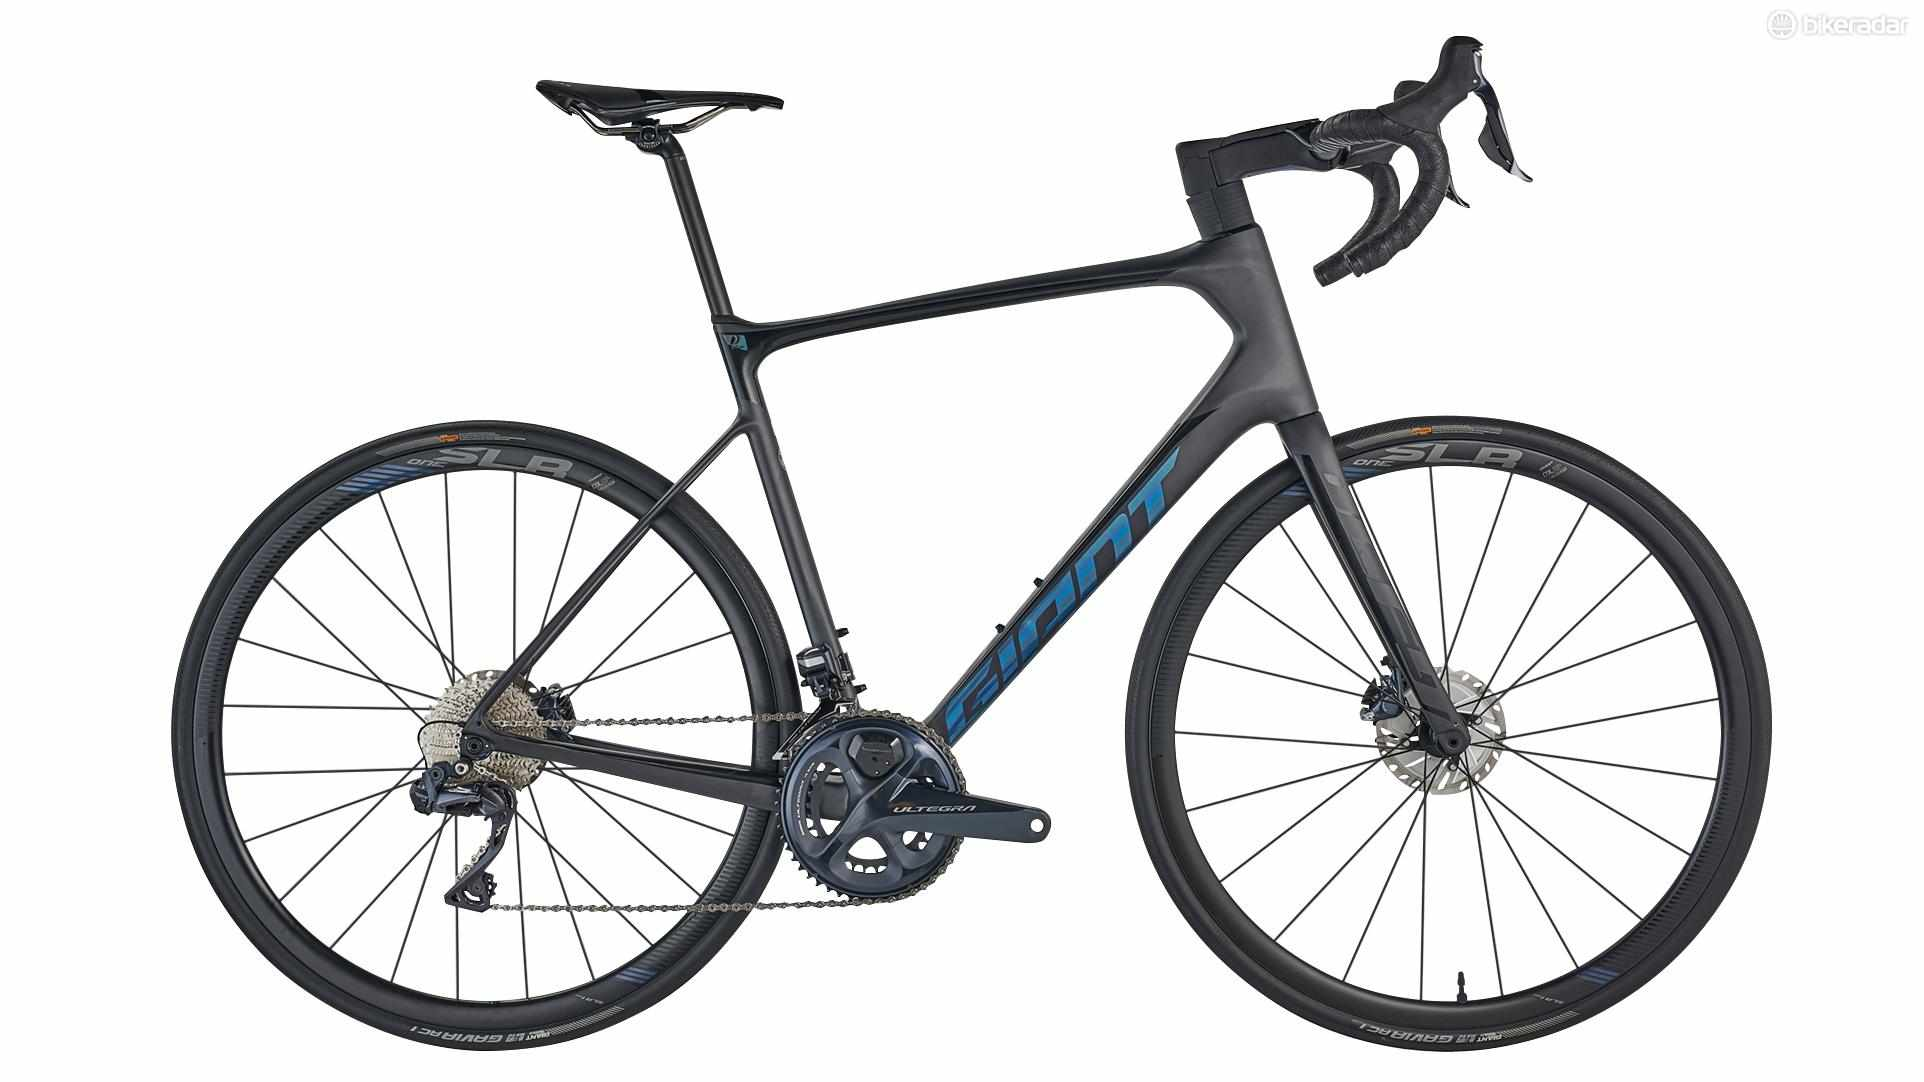 Giant's Defy Advanced Pro 0